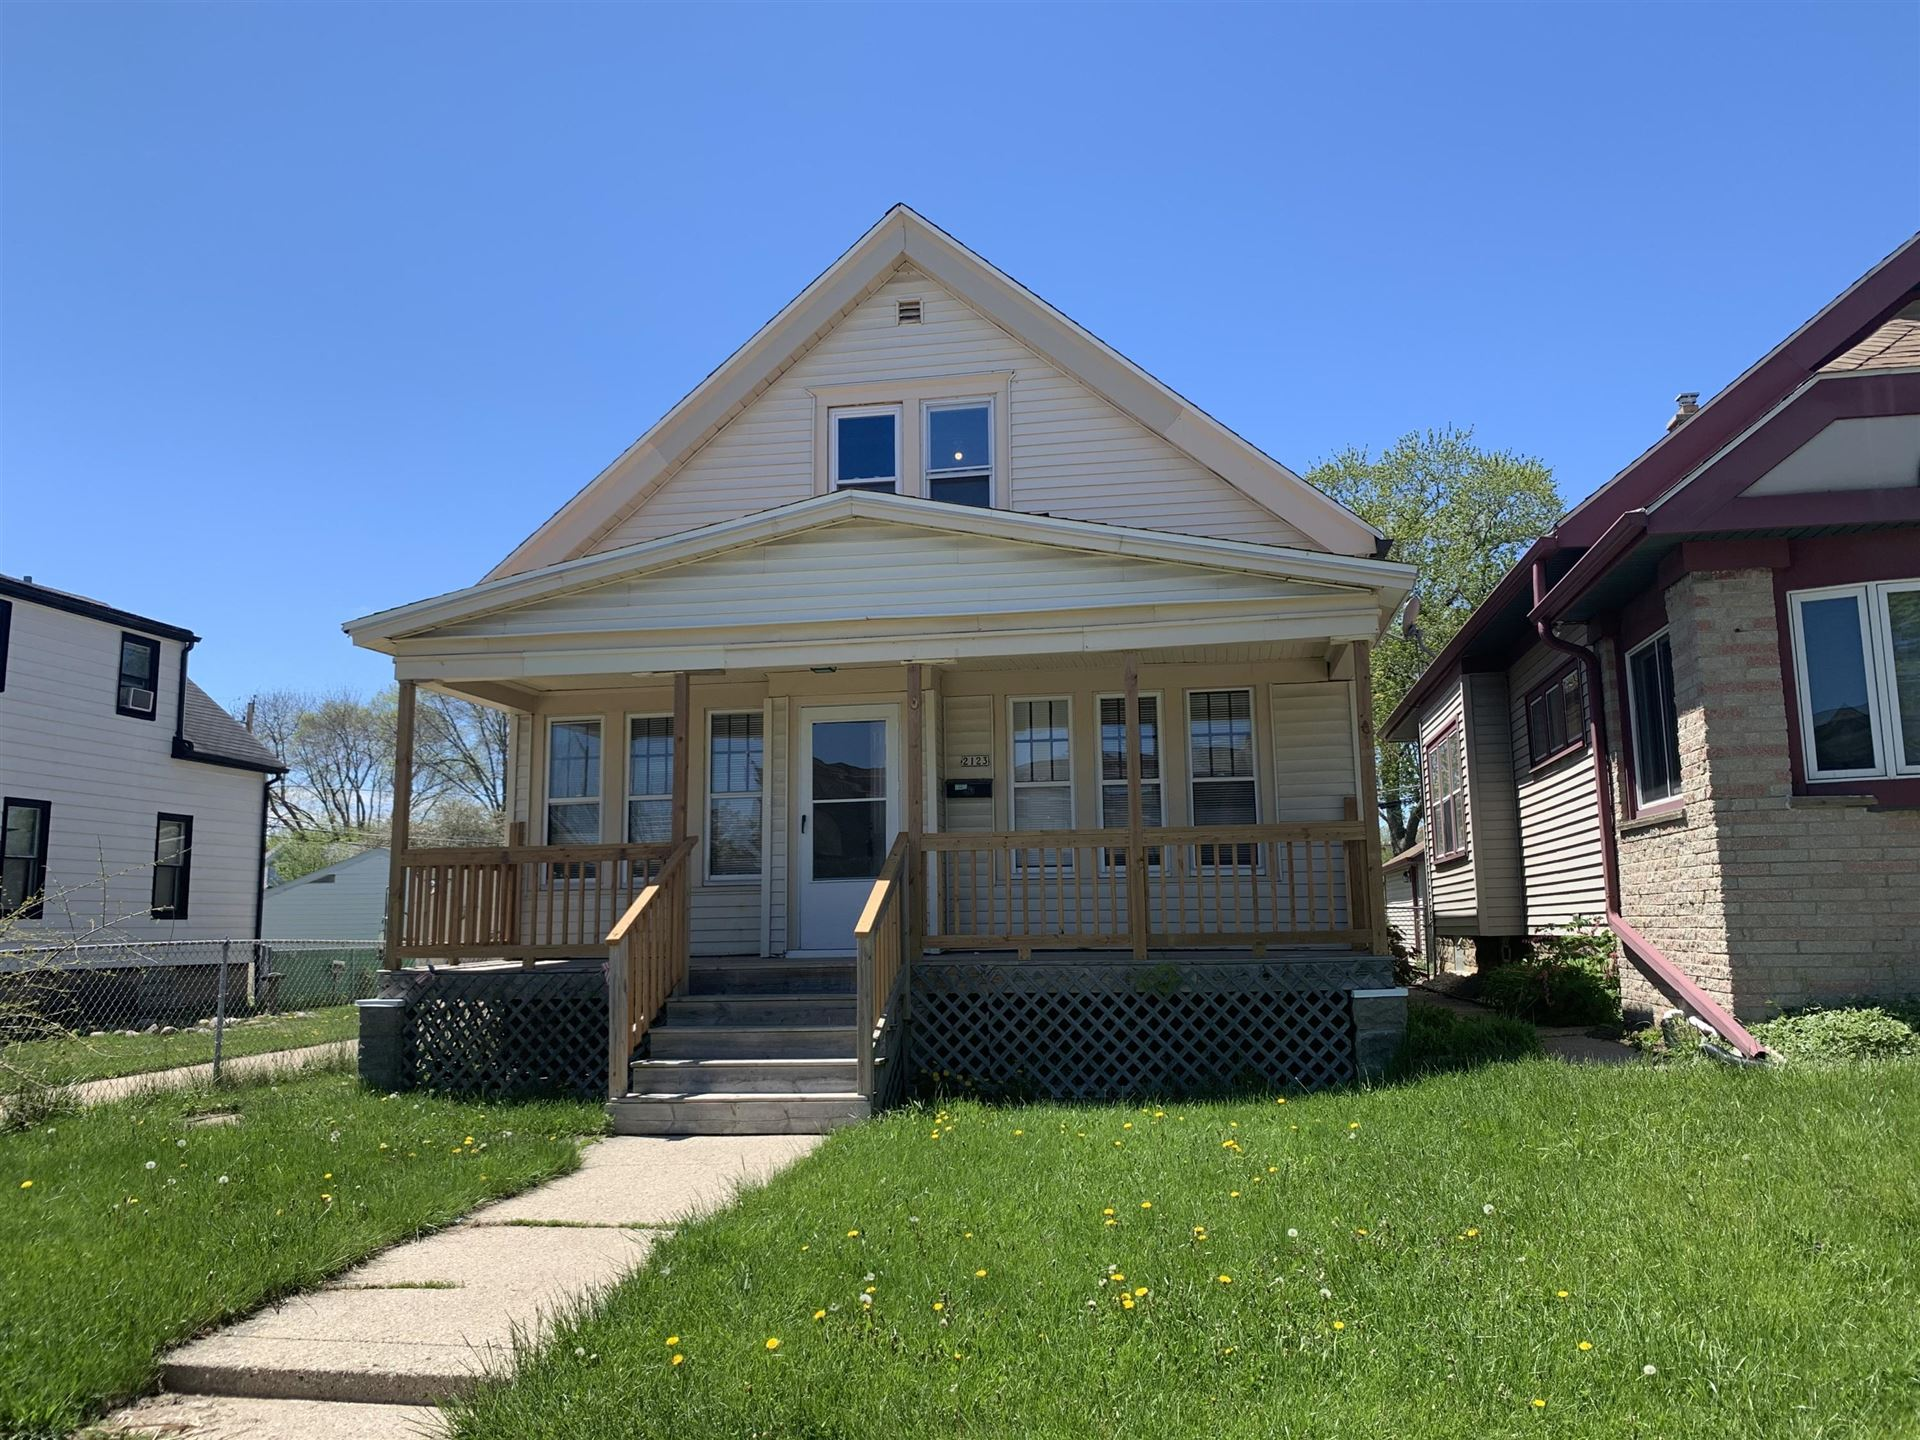 2123 S 74Th St, West Allis, WI 53219 - #: 1690365